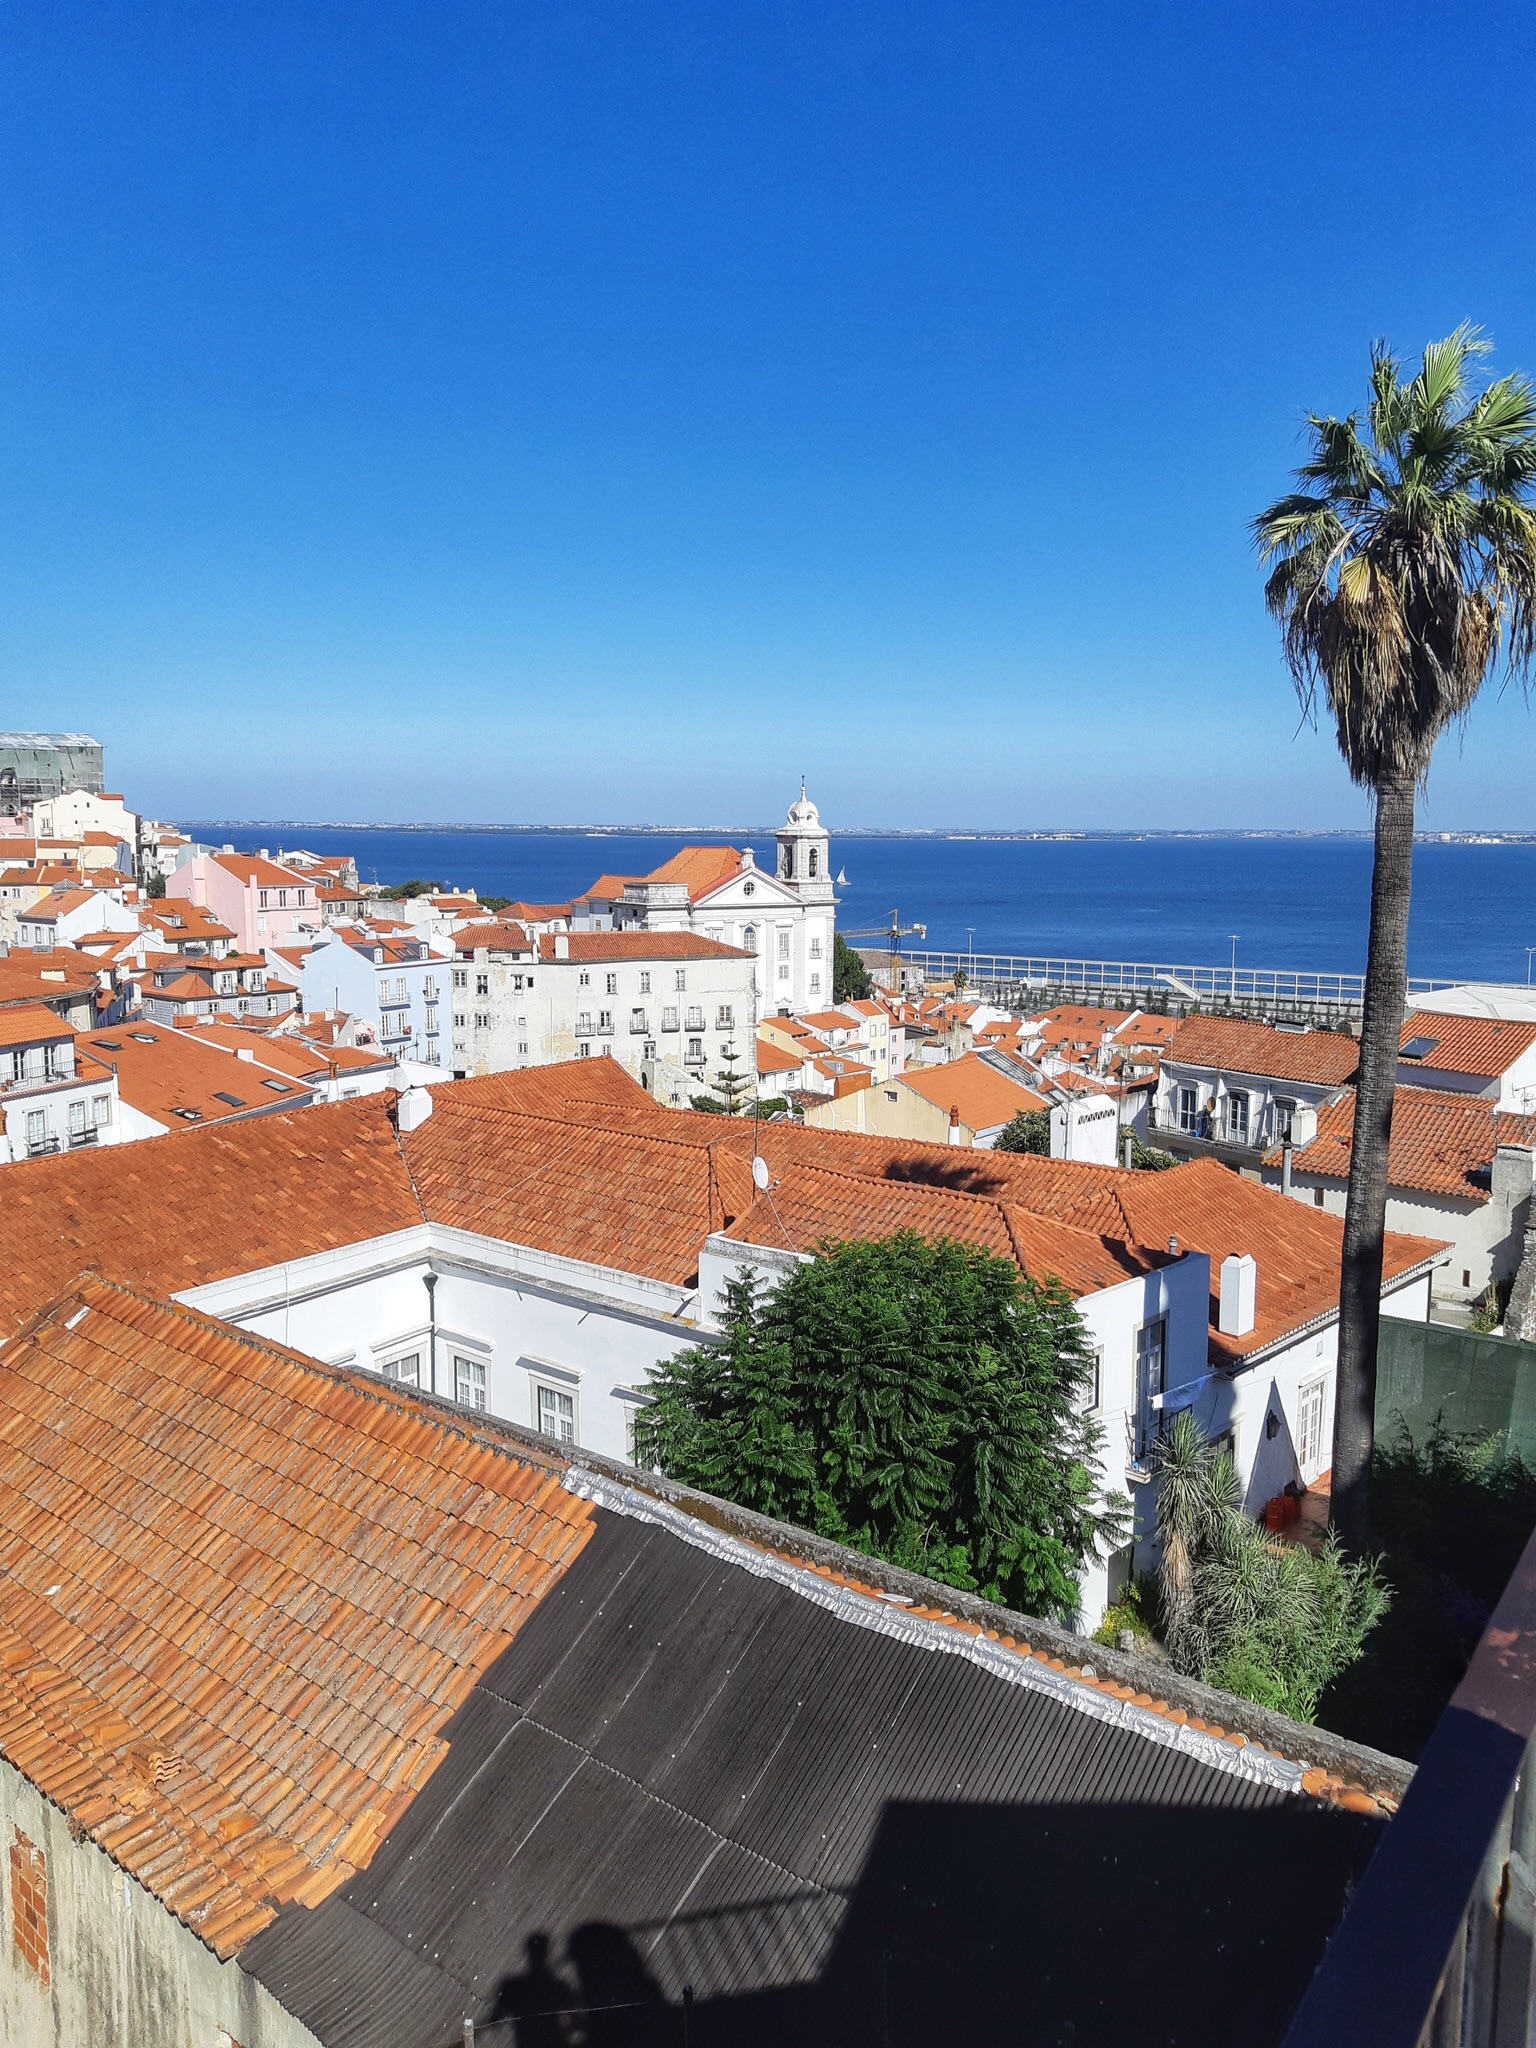 A view of the stone rooftops of Lisbon with a palm tree to the right and the ocean in the background